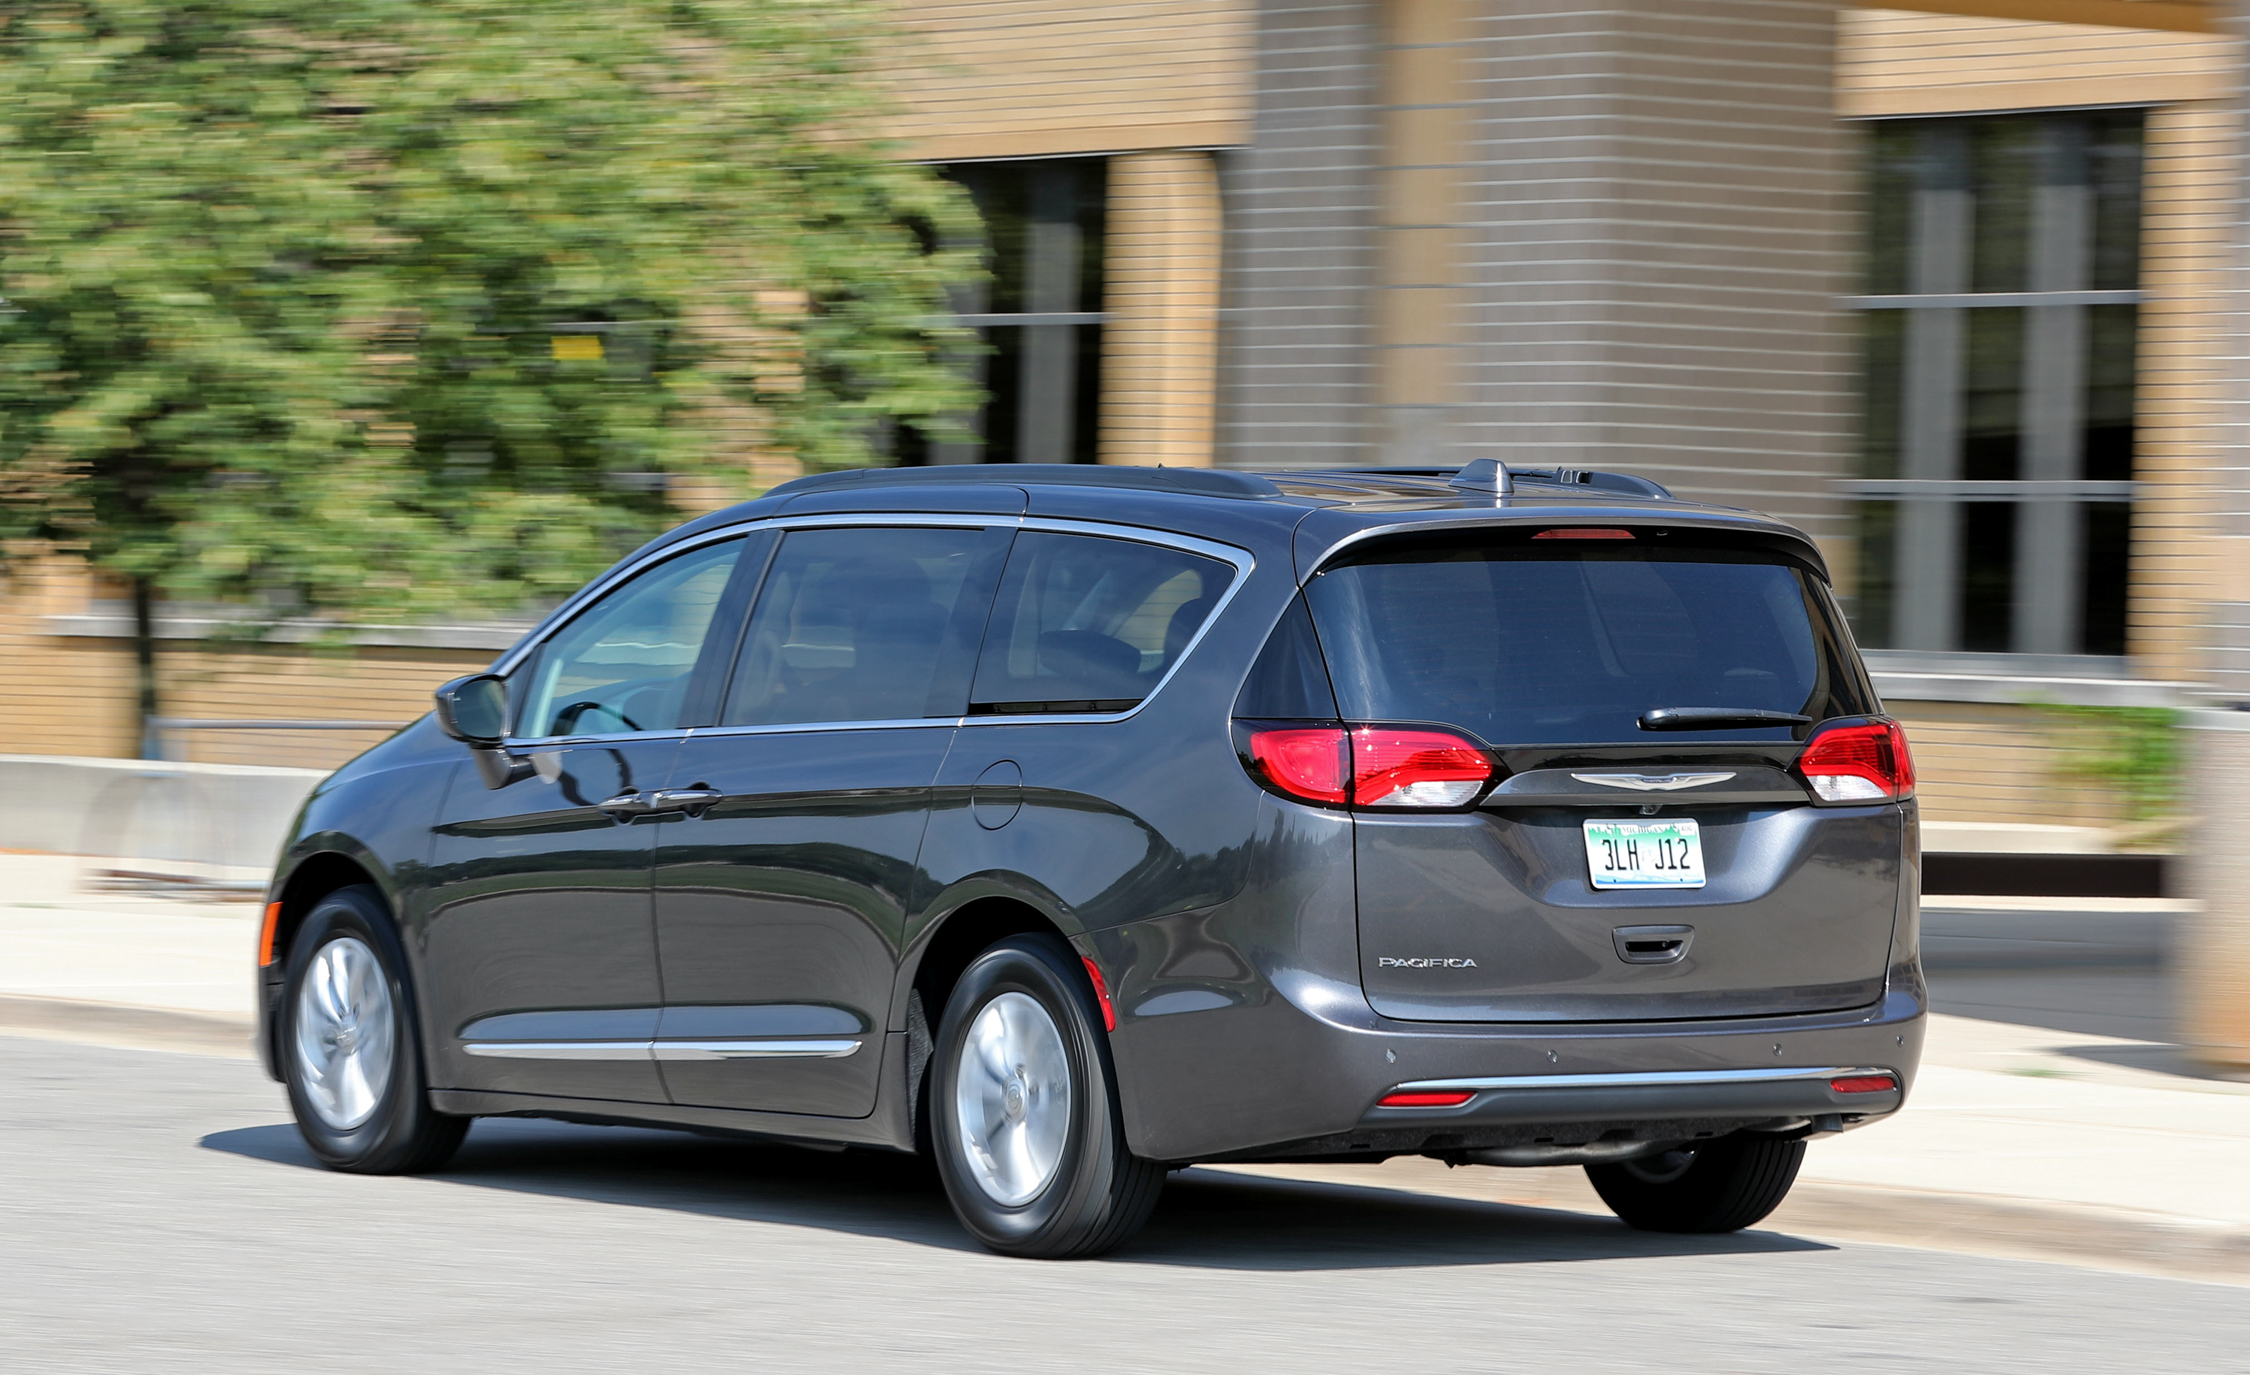 2017 Chrysler Pacifica Test Drive Rear View (Photo 7 of 25)